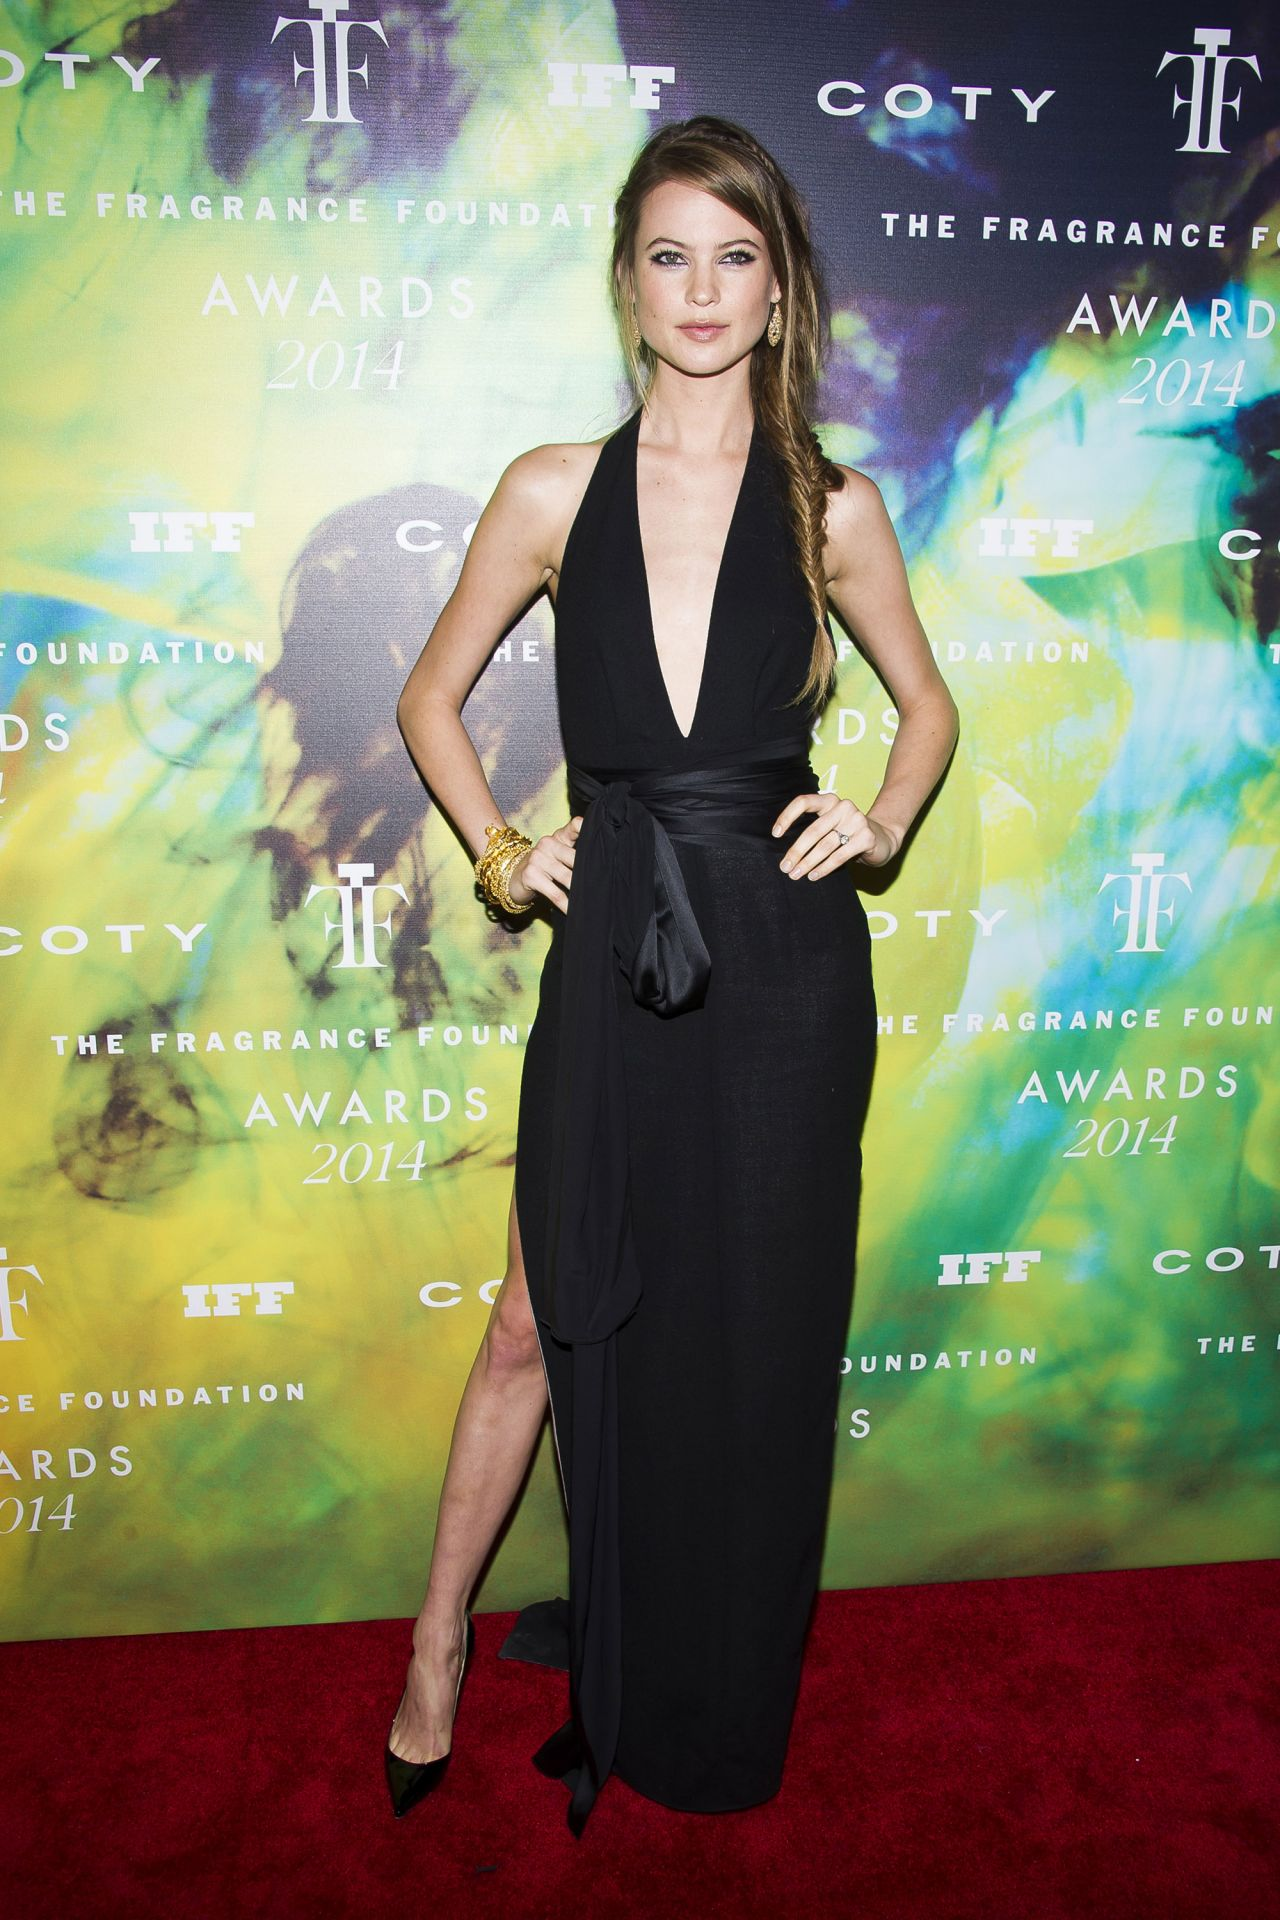 Behati Prinsloo - Fragrance Foundation Awards 2014